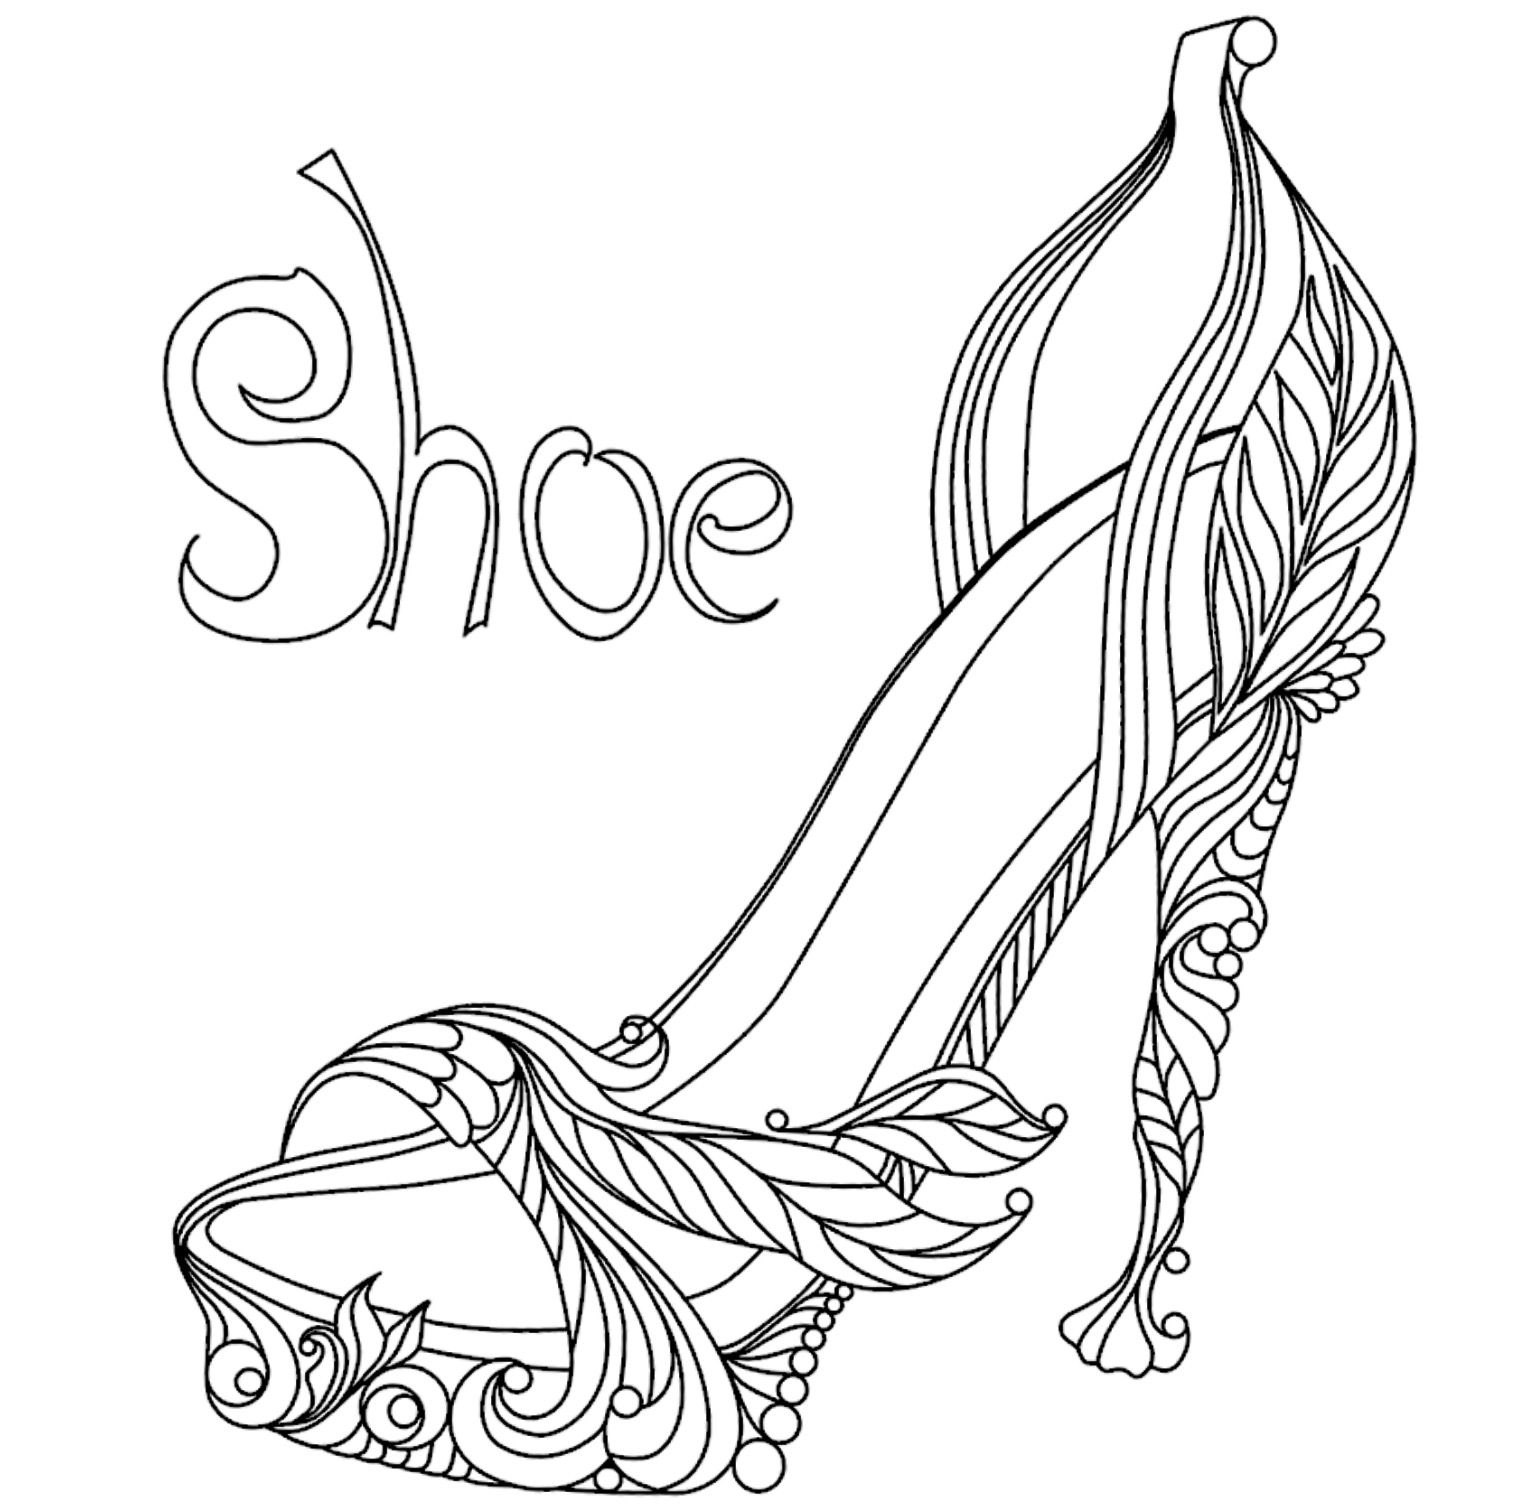 Coloring pages shoes - Shoe Coloring Page